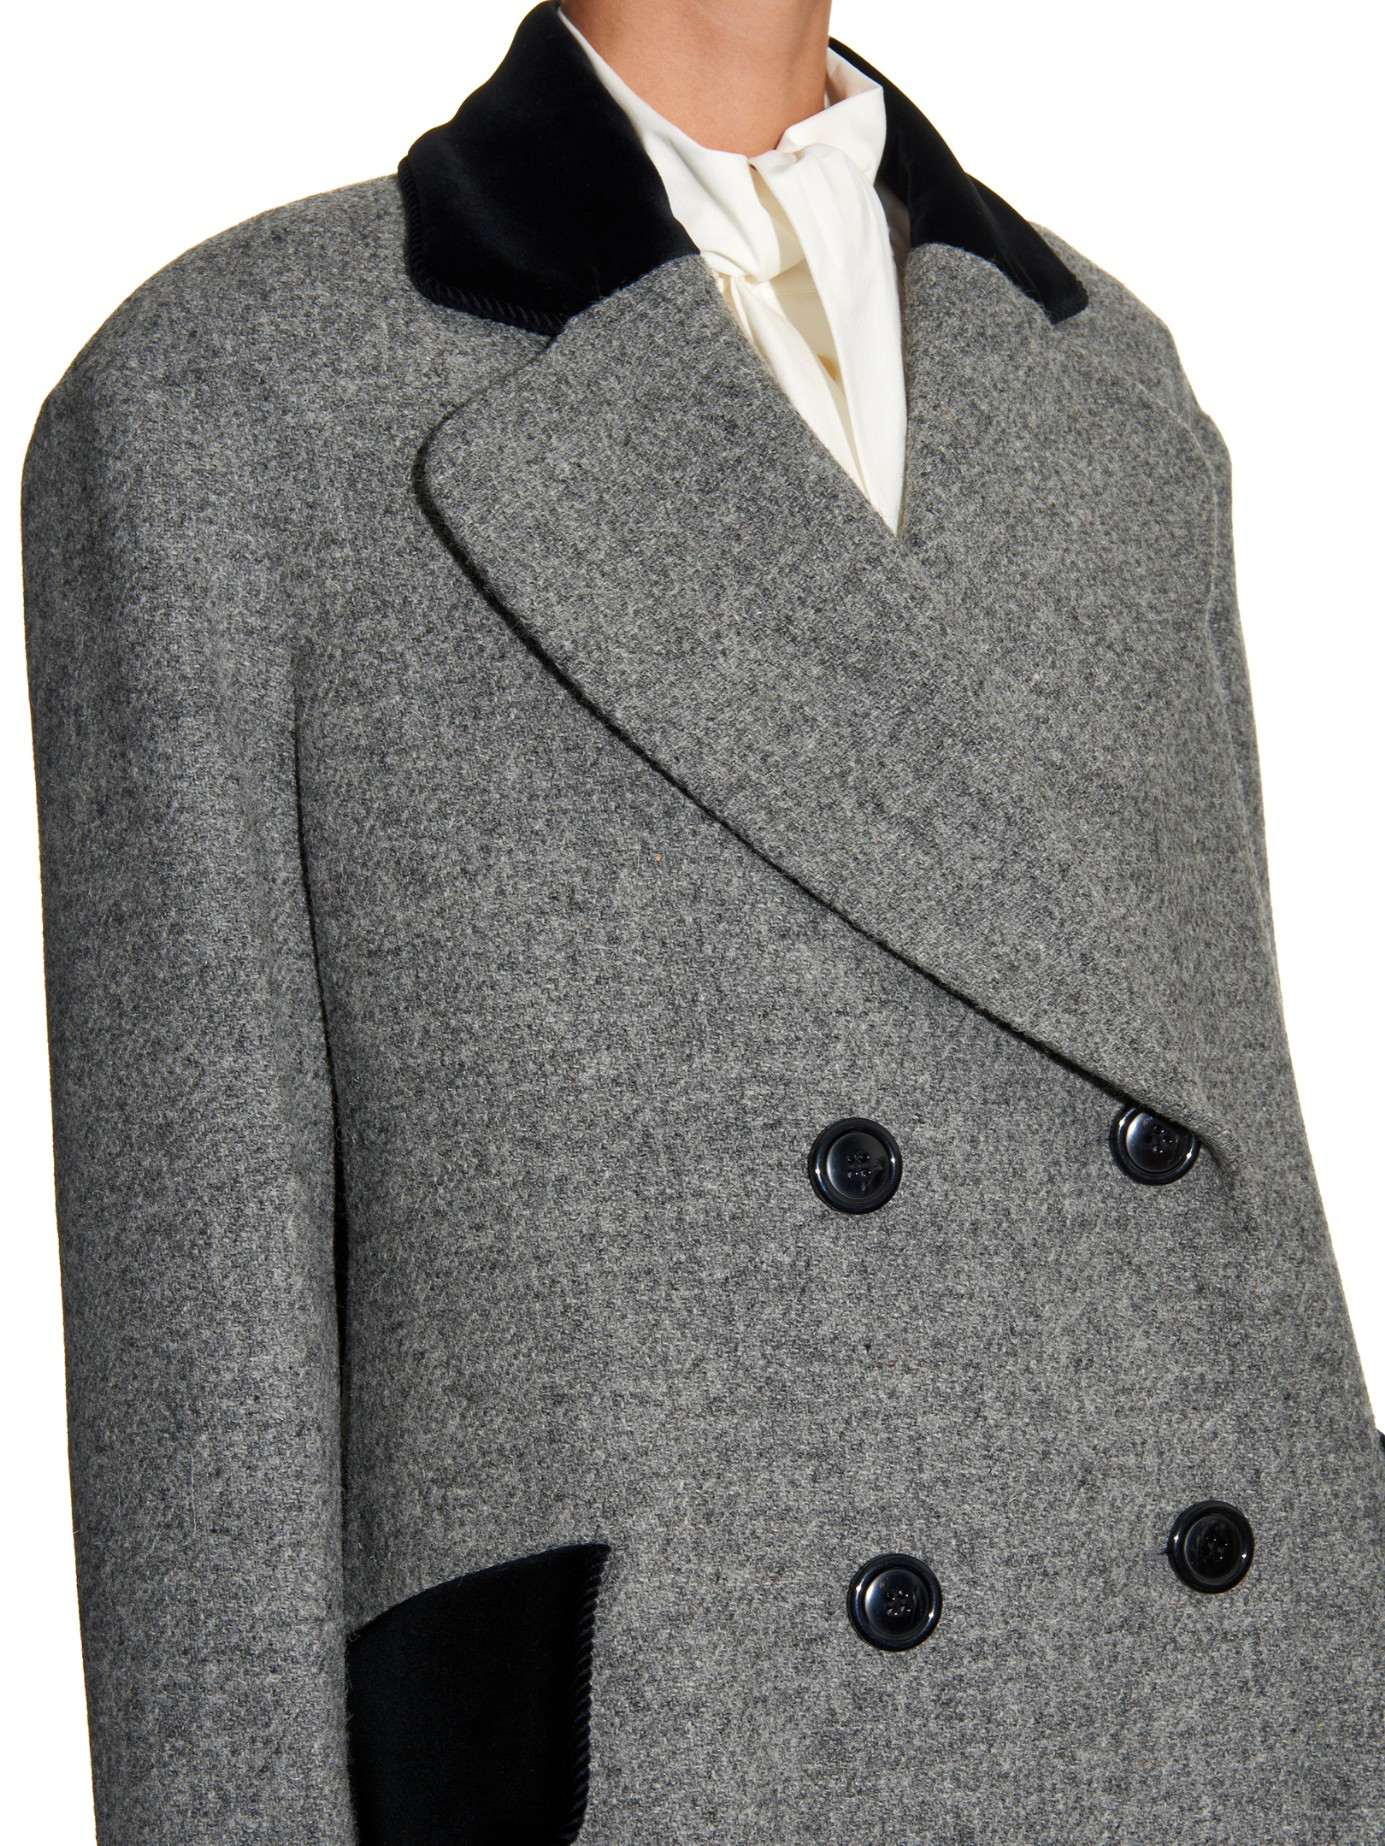 Vivienne Westwood Red Label Princess Harris-Tweed Coat in Gray - Lyst 807cce297a9